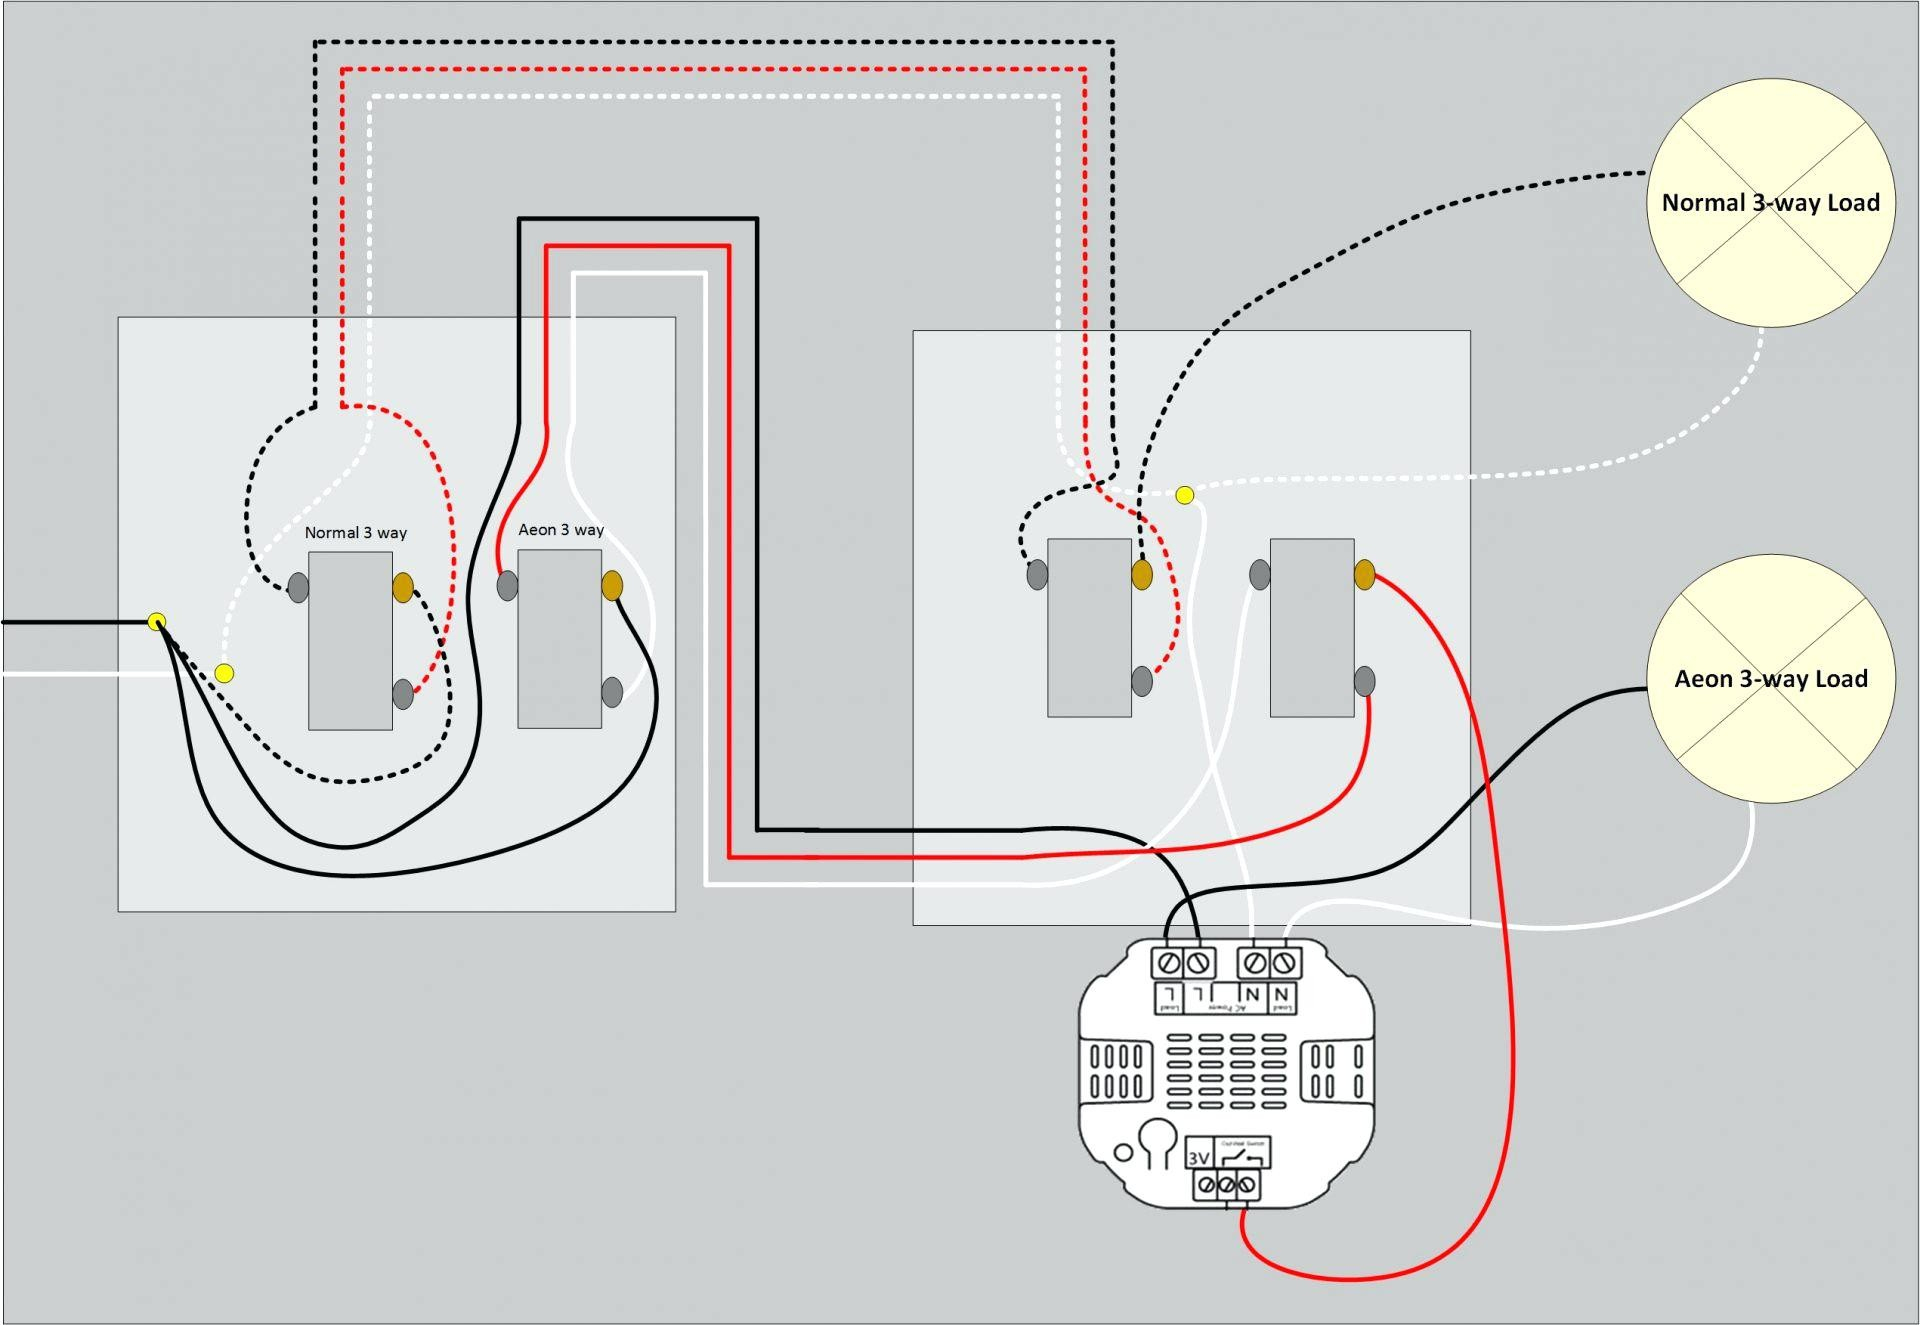 Lutron Diva Dimmer Wiring Diagram from 2020cadillac.com